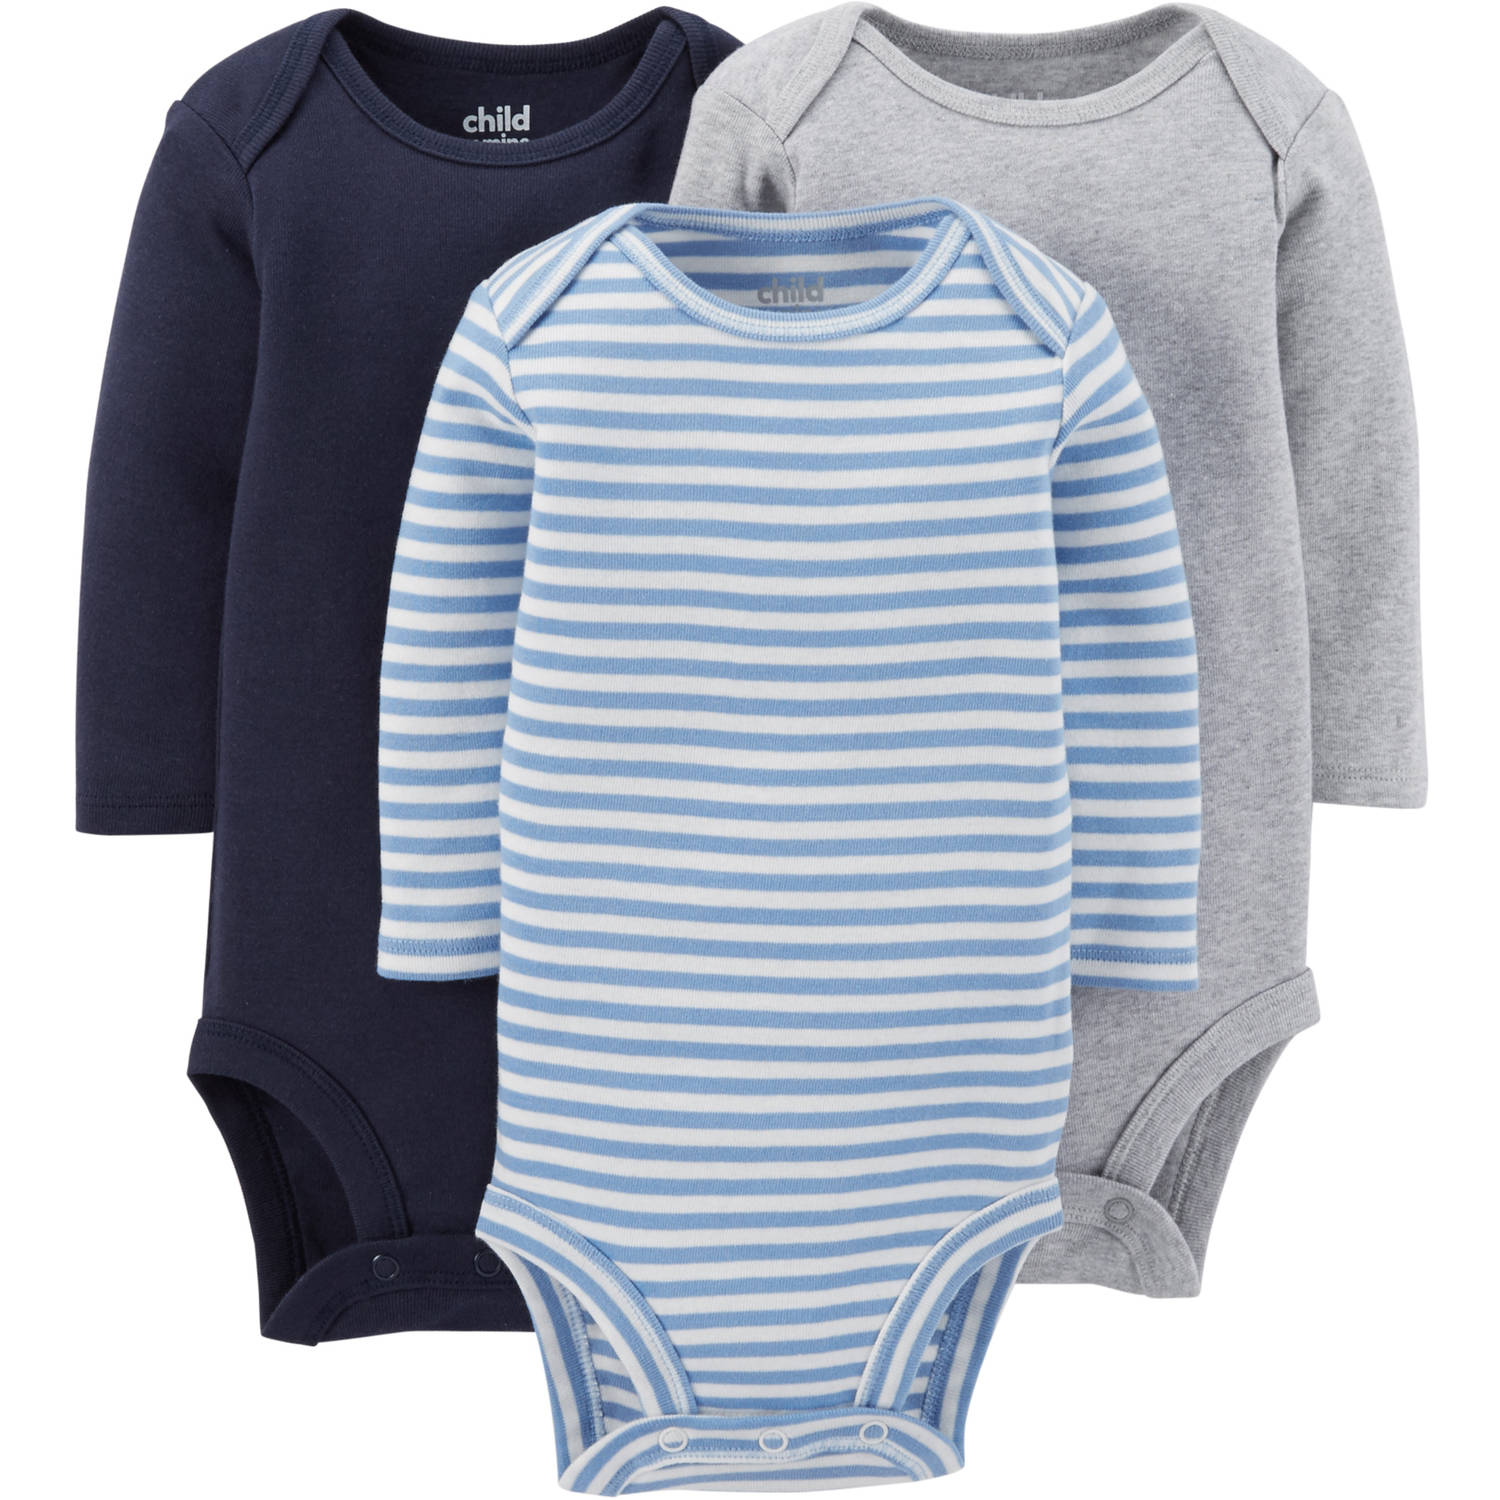 Child Of Mine By Carter's Newborn Baby Boy Long Sleeve Bodysuit, 3 Pack